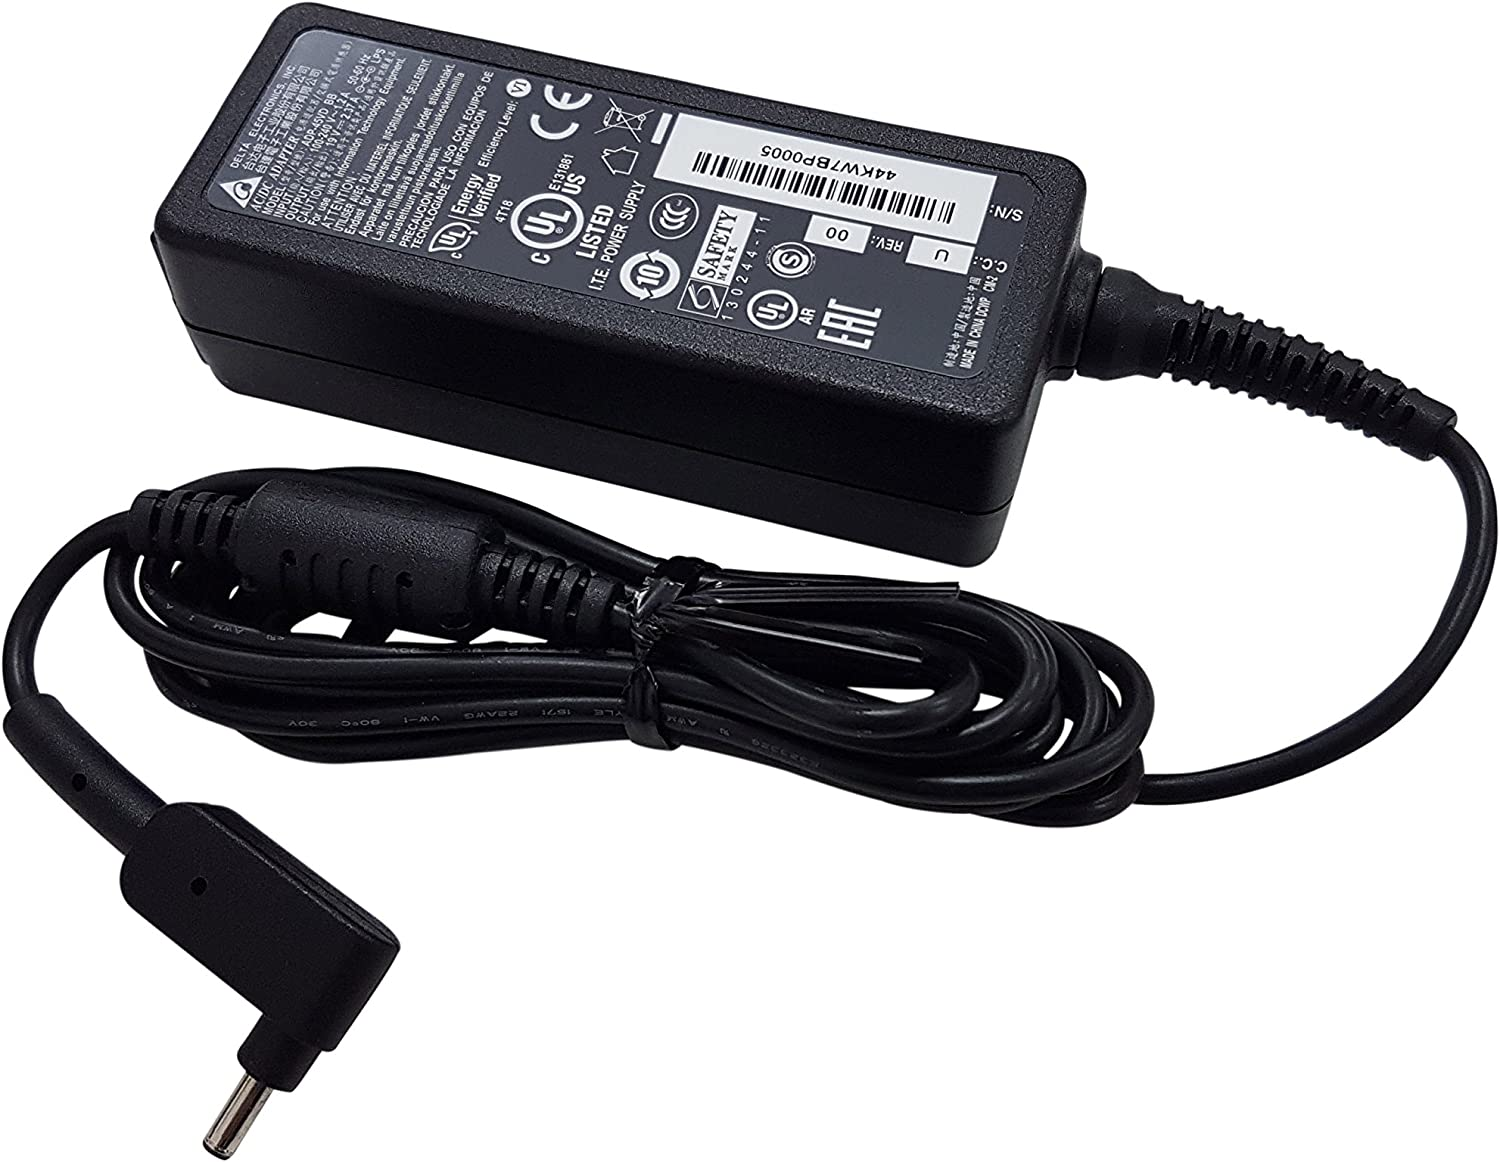 Laptop Charger for Acer Chromebook CB3 CB5 11 13 14 15 R11 C720 C730 C731 C731T C735 C810 CB3-431 CB3-111 CB5-132T N15Q8 N15Q9 AC Adapter Power Supply Cable Cord 19V 2.37A 45W